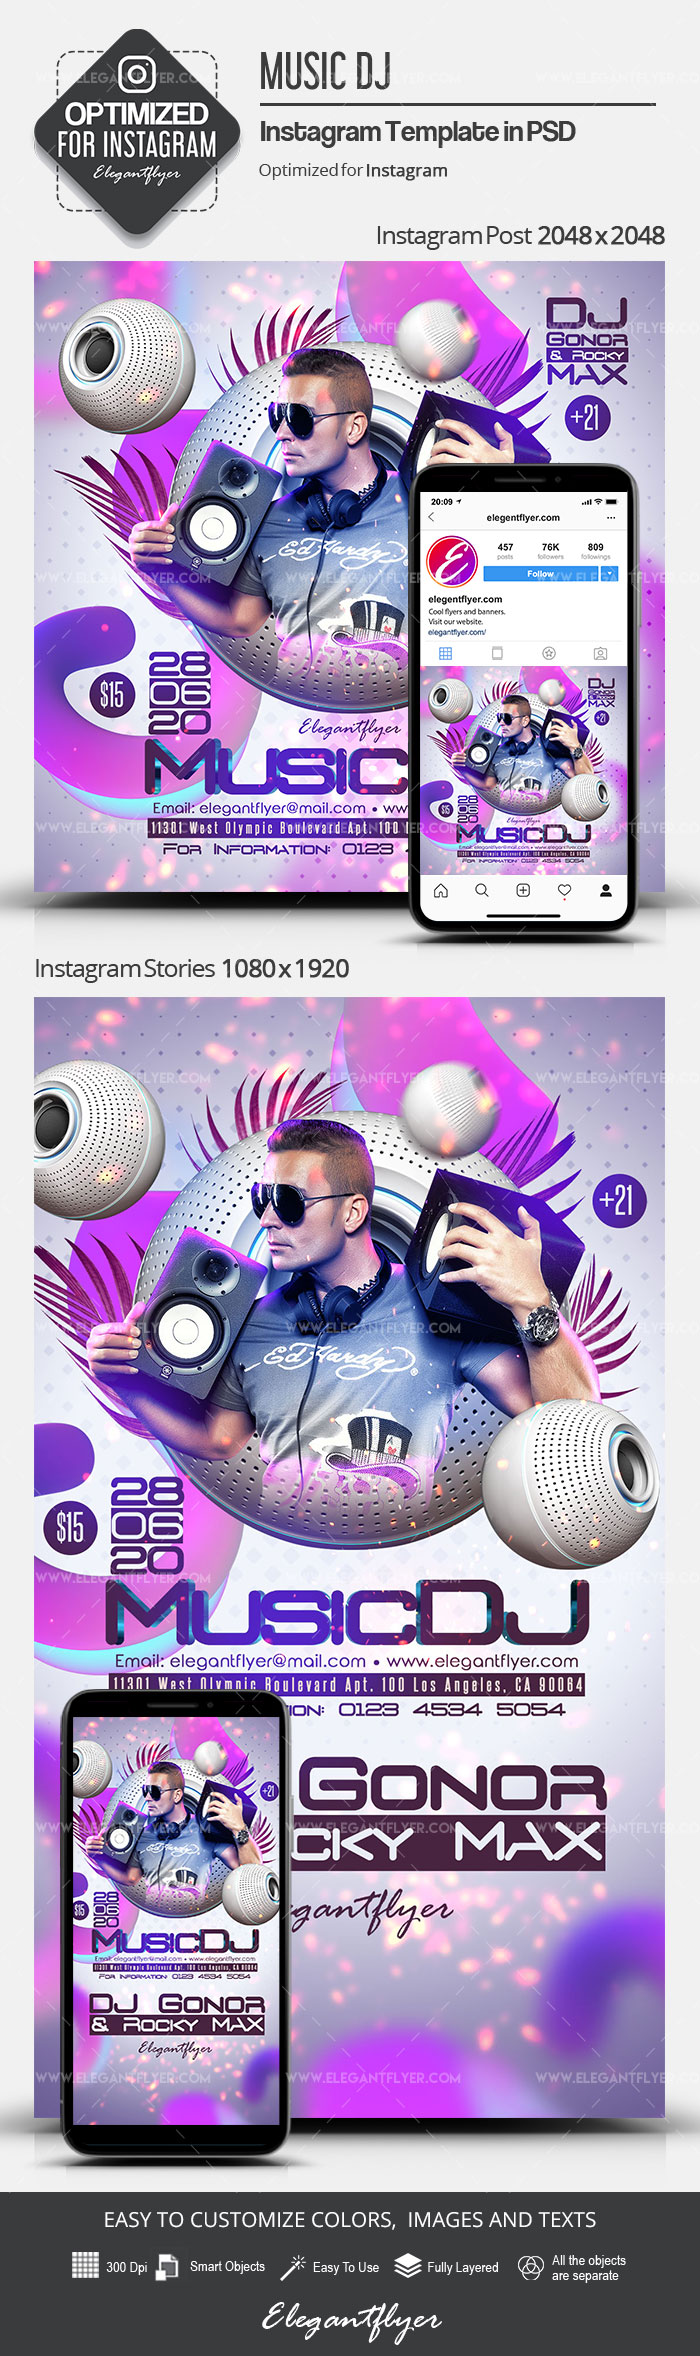 Music DJ – Instagram Stories Template in PSD + Post Templates